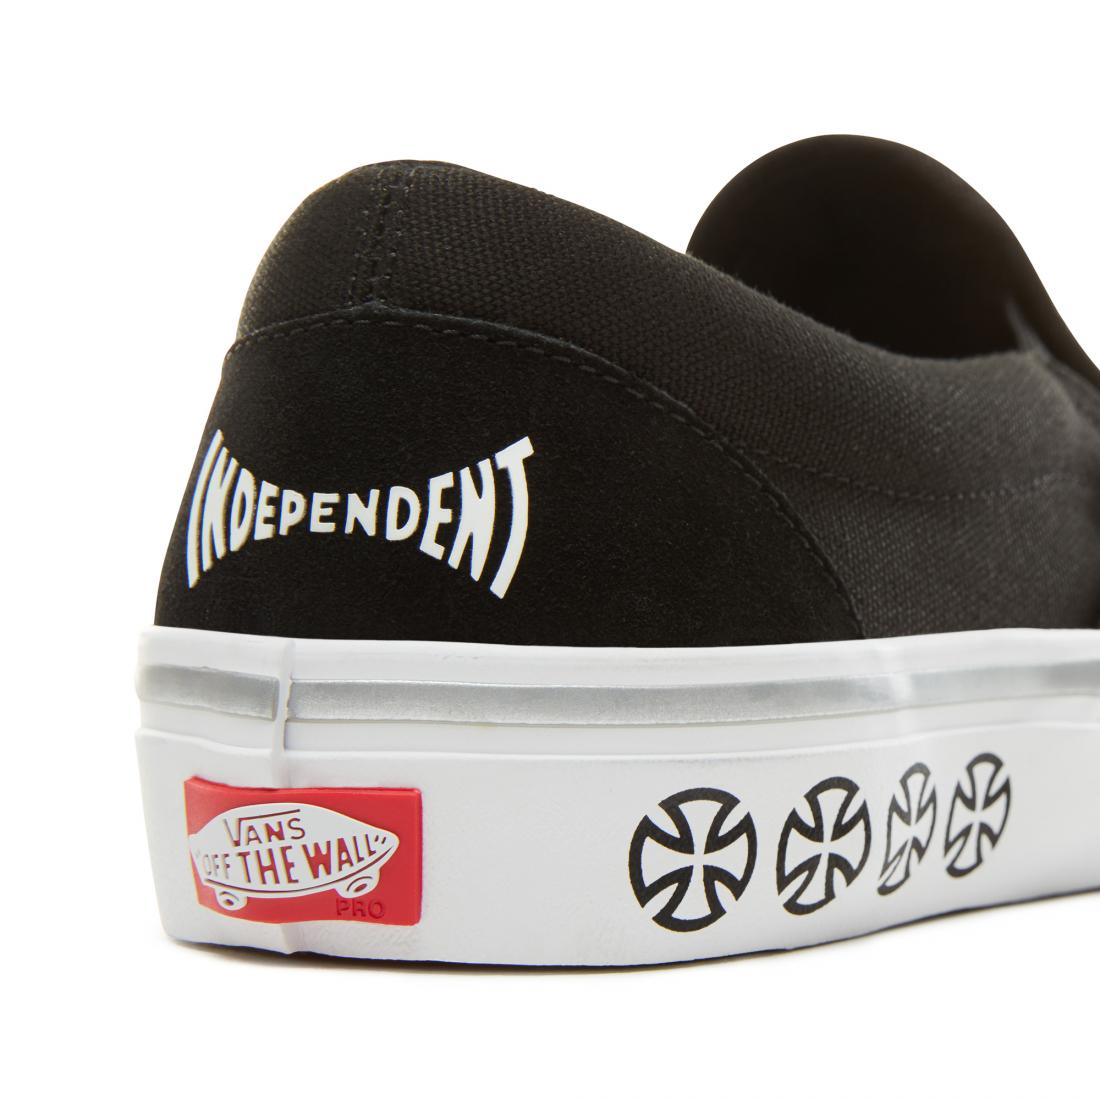 Слипоны Vans Slip-On PRO (Independent) купить в Boardshop №1